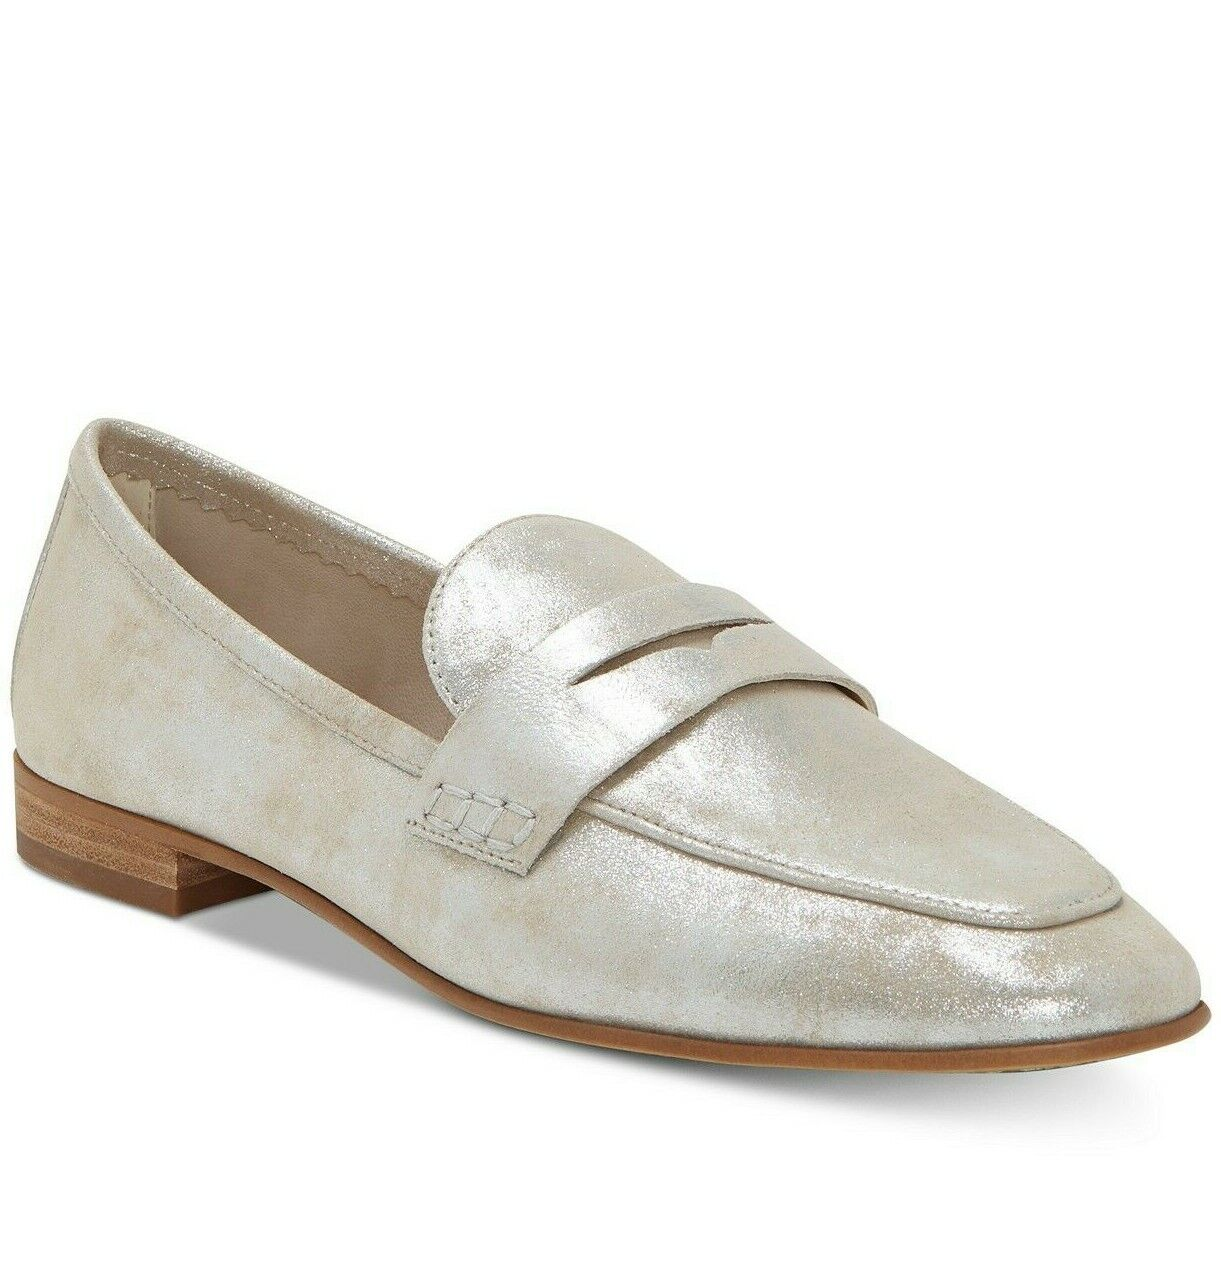 9.5M VINCE CAMUTO VC- MACINDA SANDY SILVER SPARKLING SUEDE LEATHER LOAFER SHOES